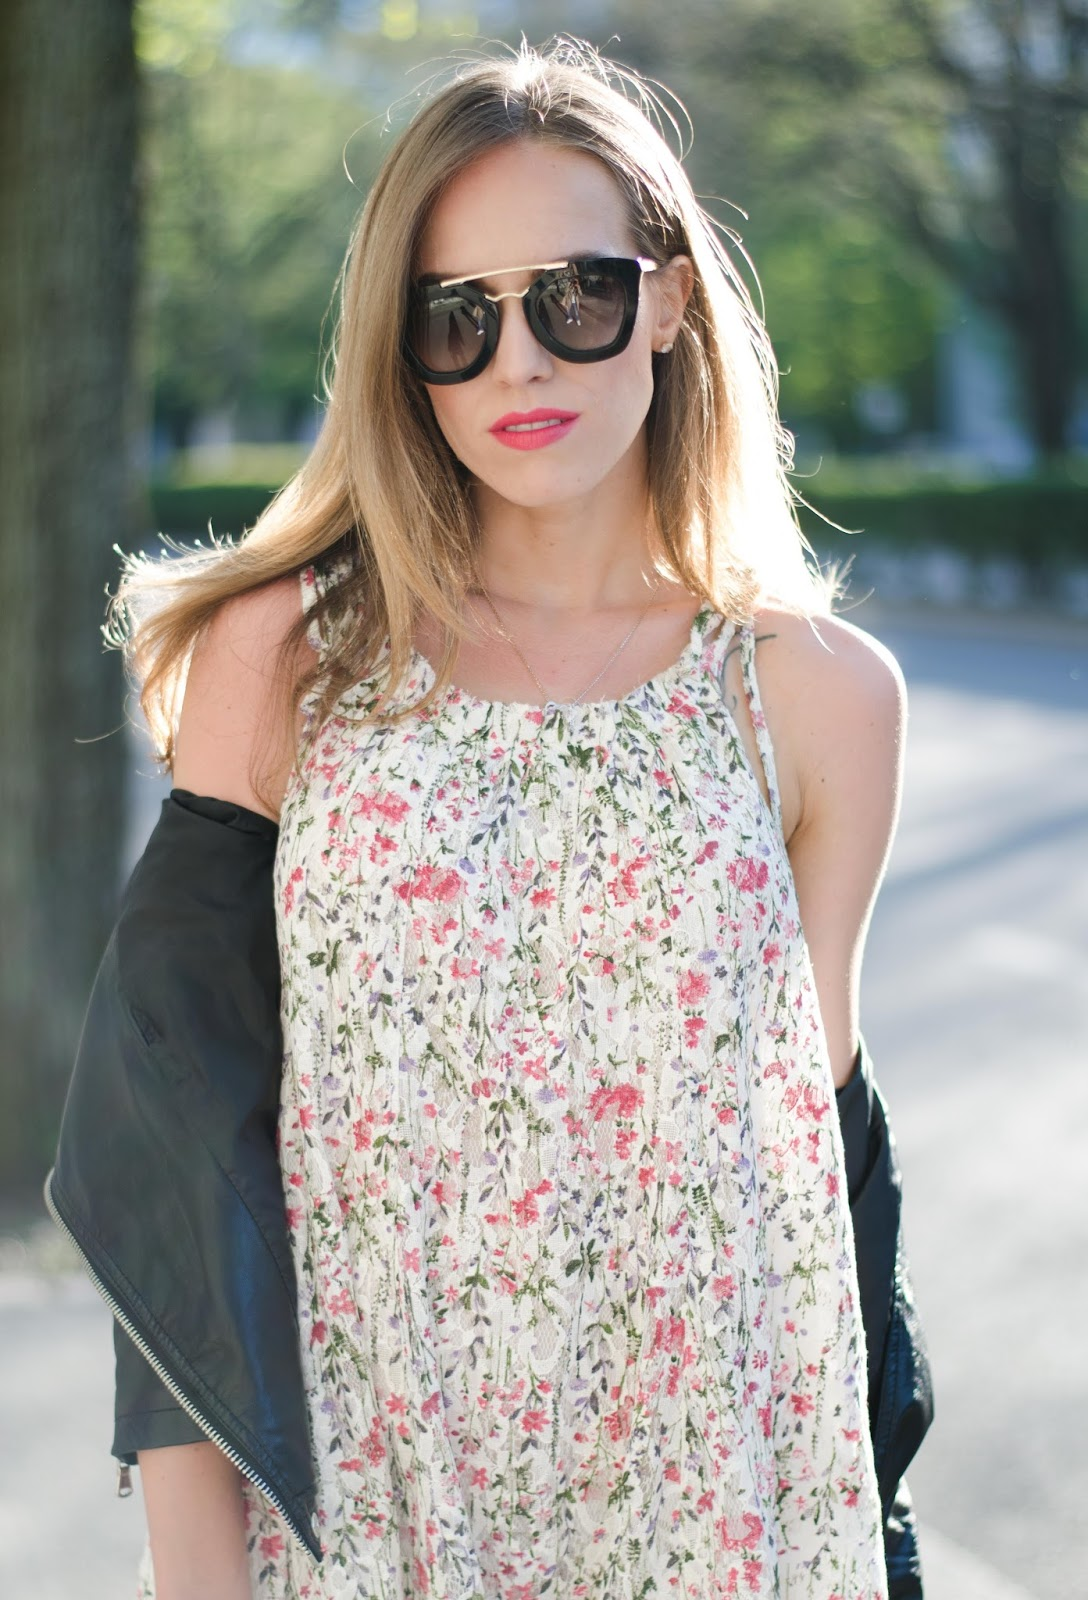 kristjaana mere floral strap dress outfit